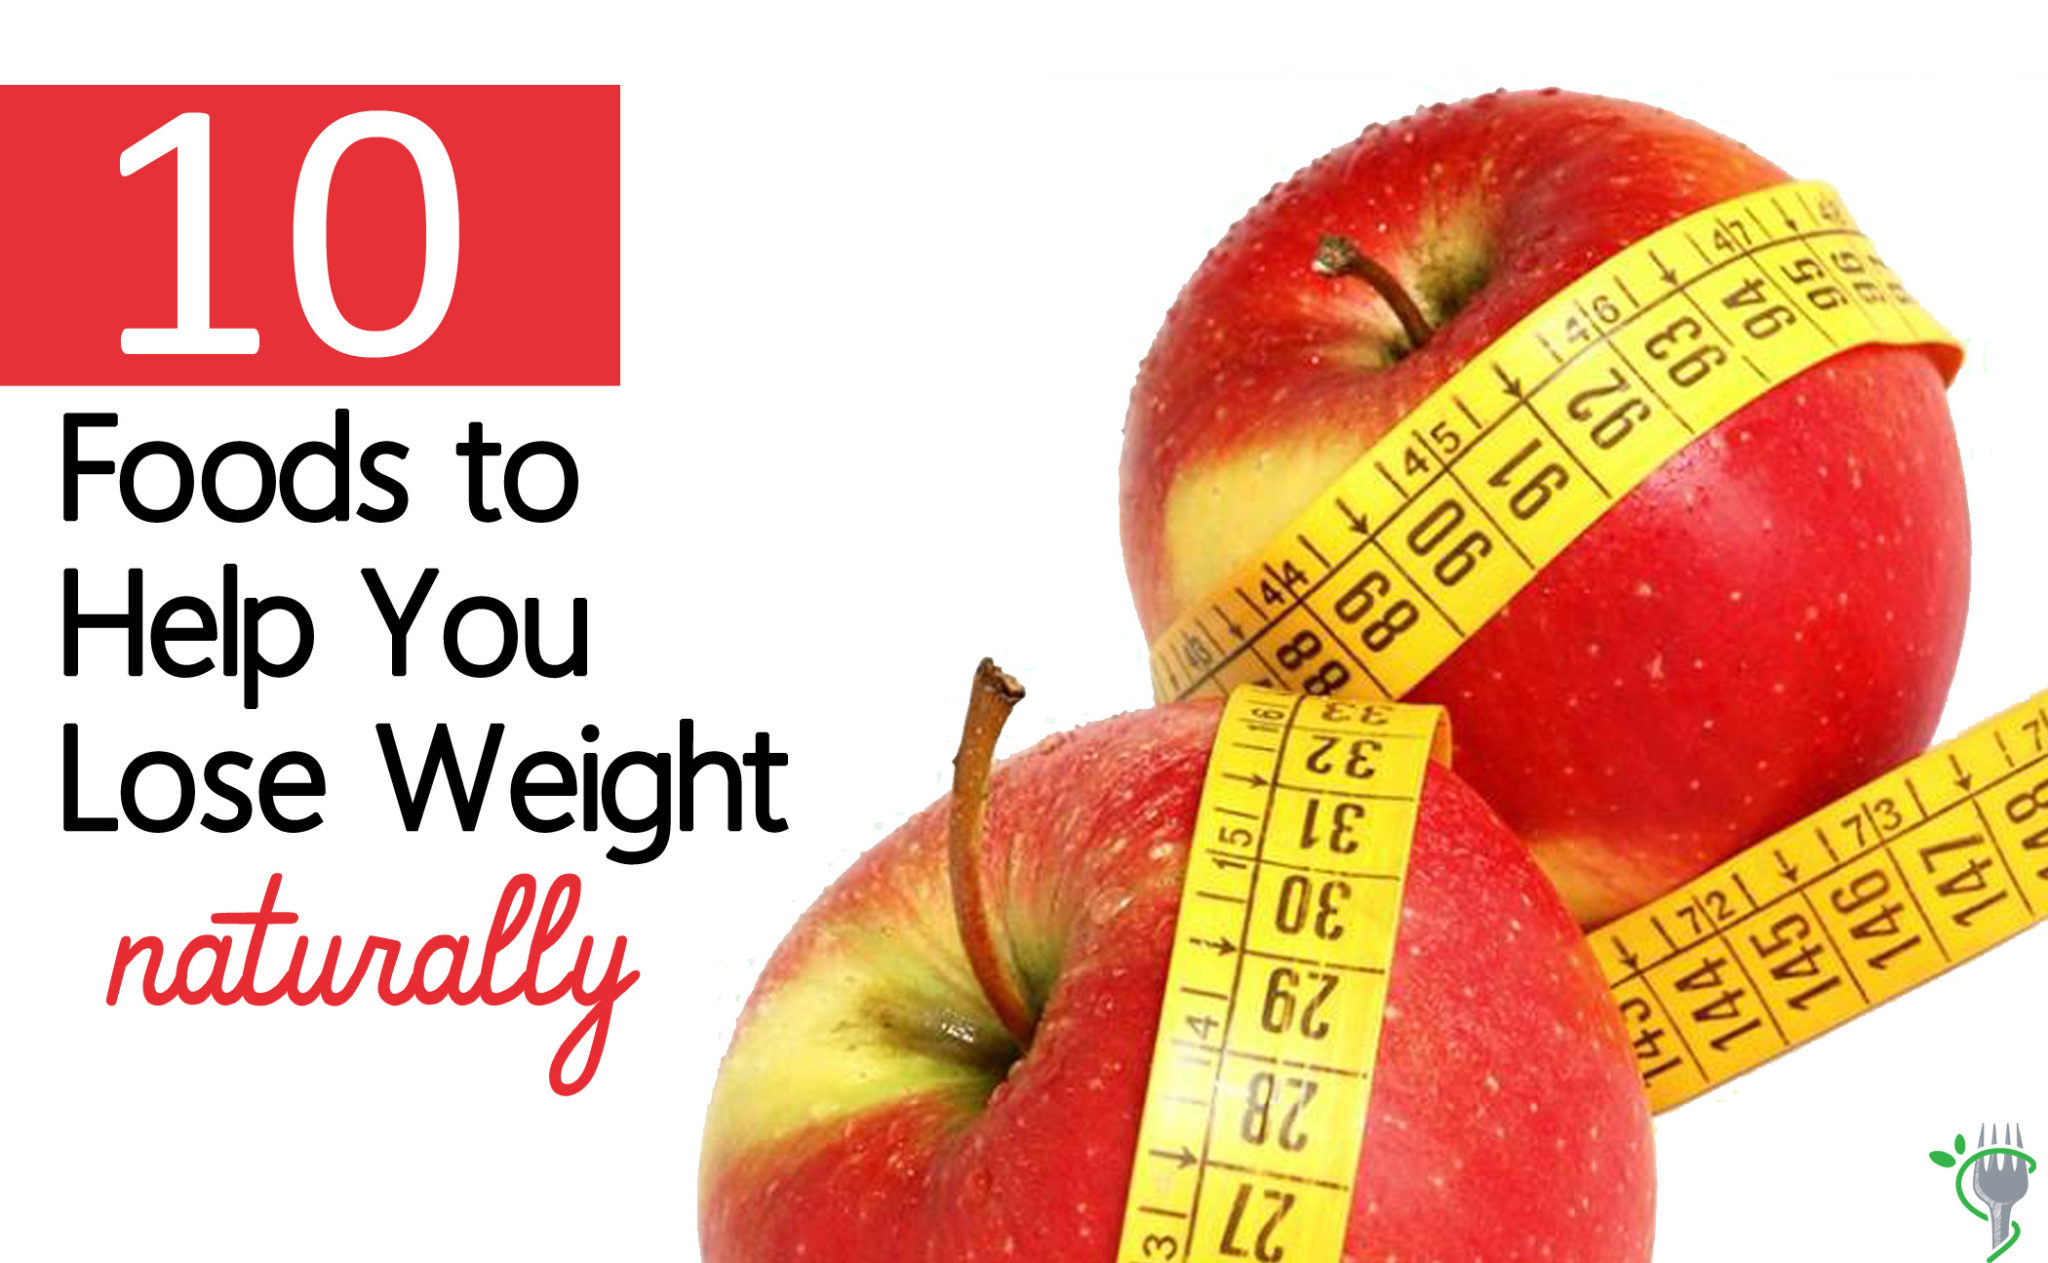 10 foods to help you lose weight naturally - healthy eaton